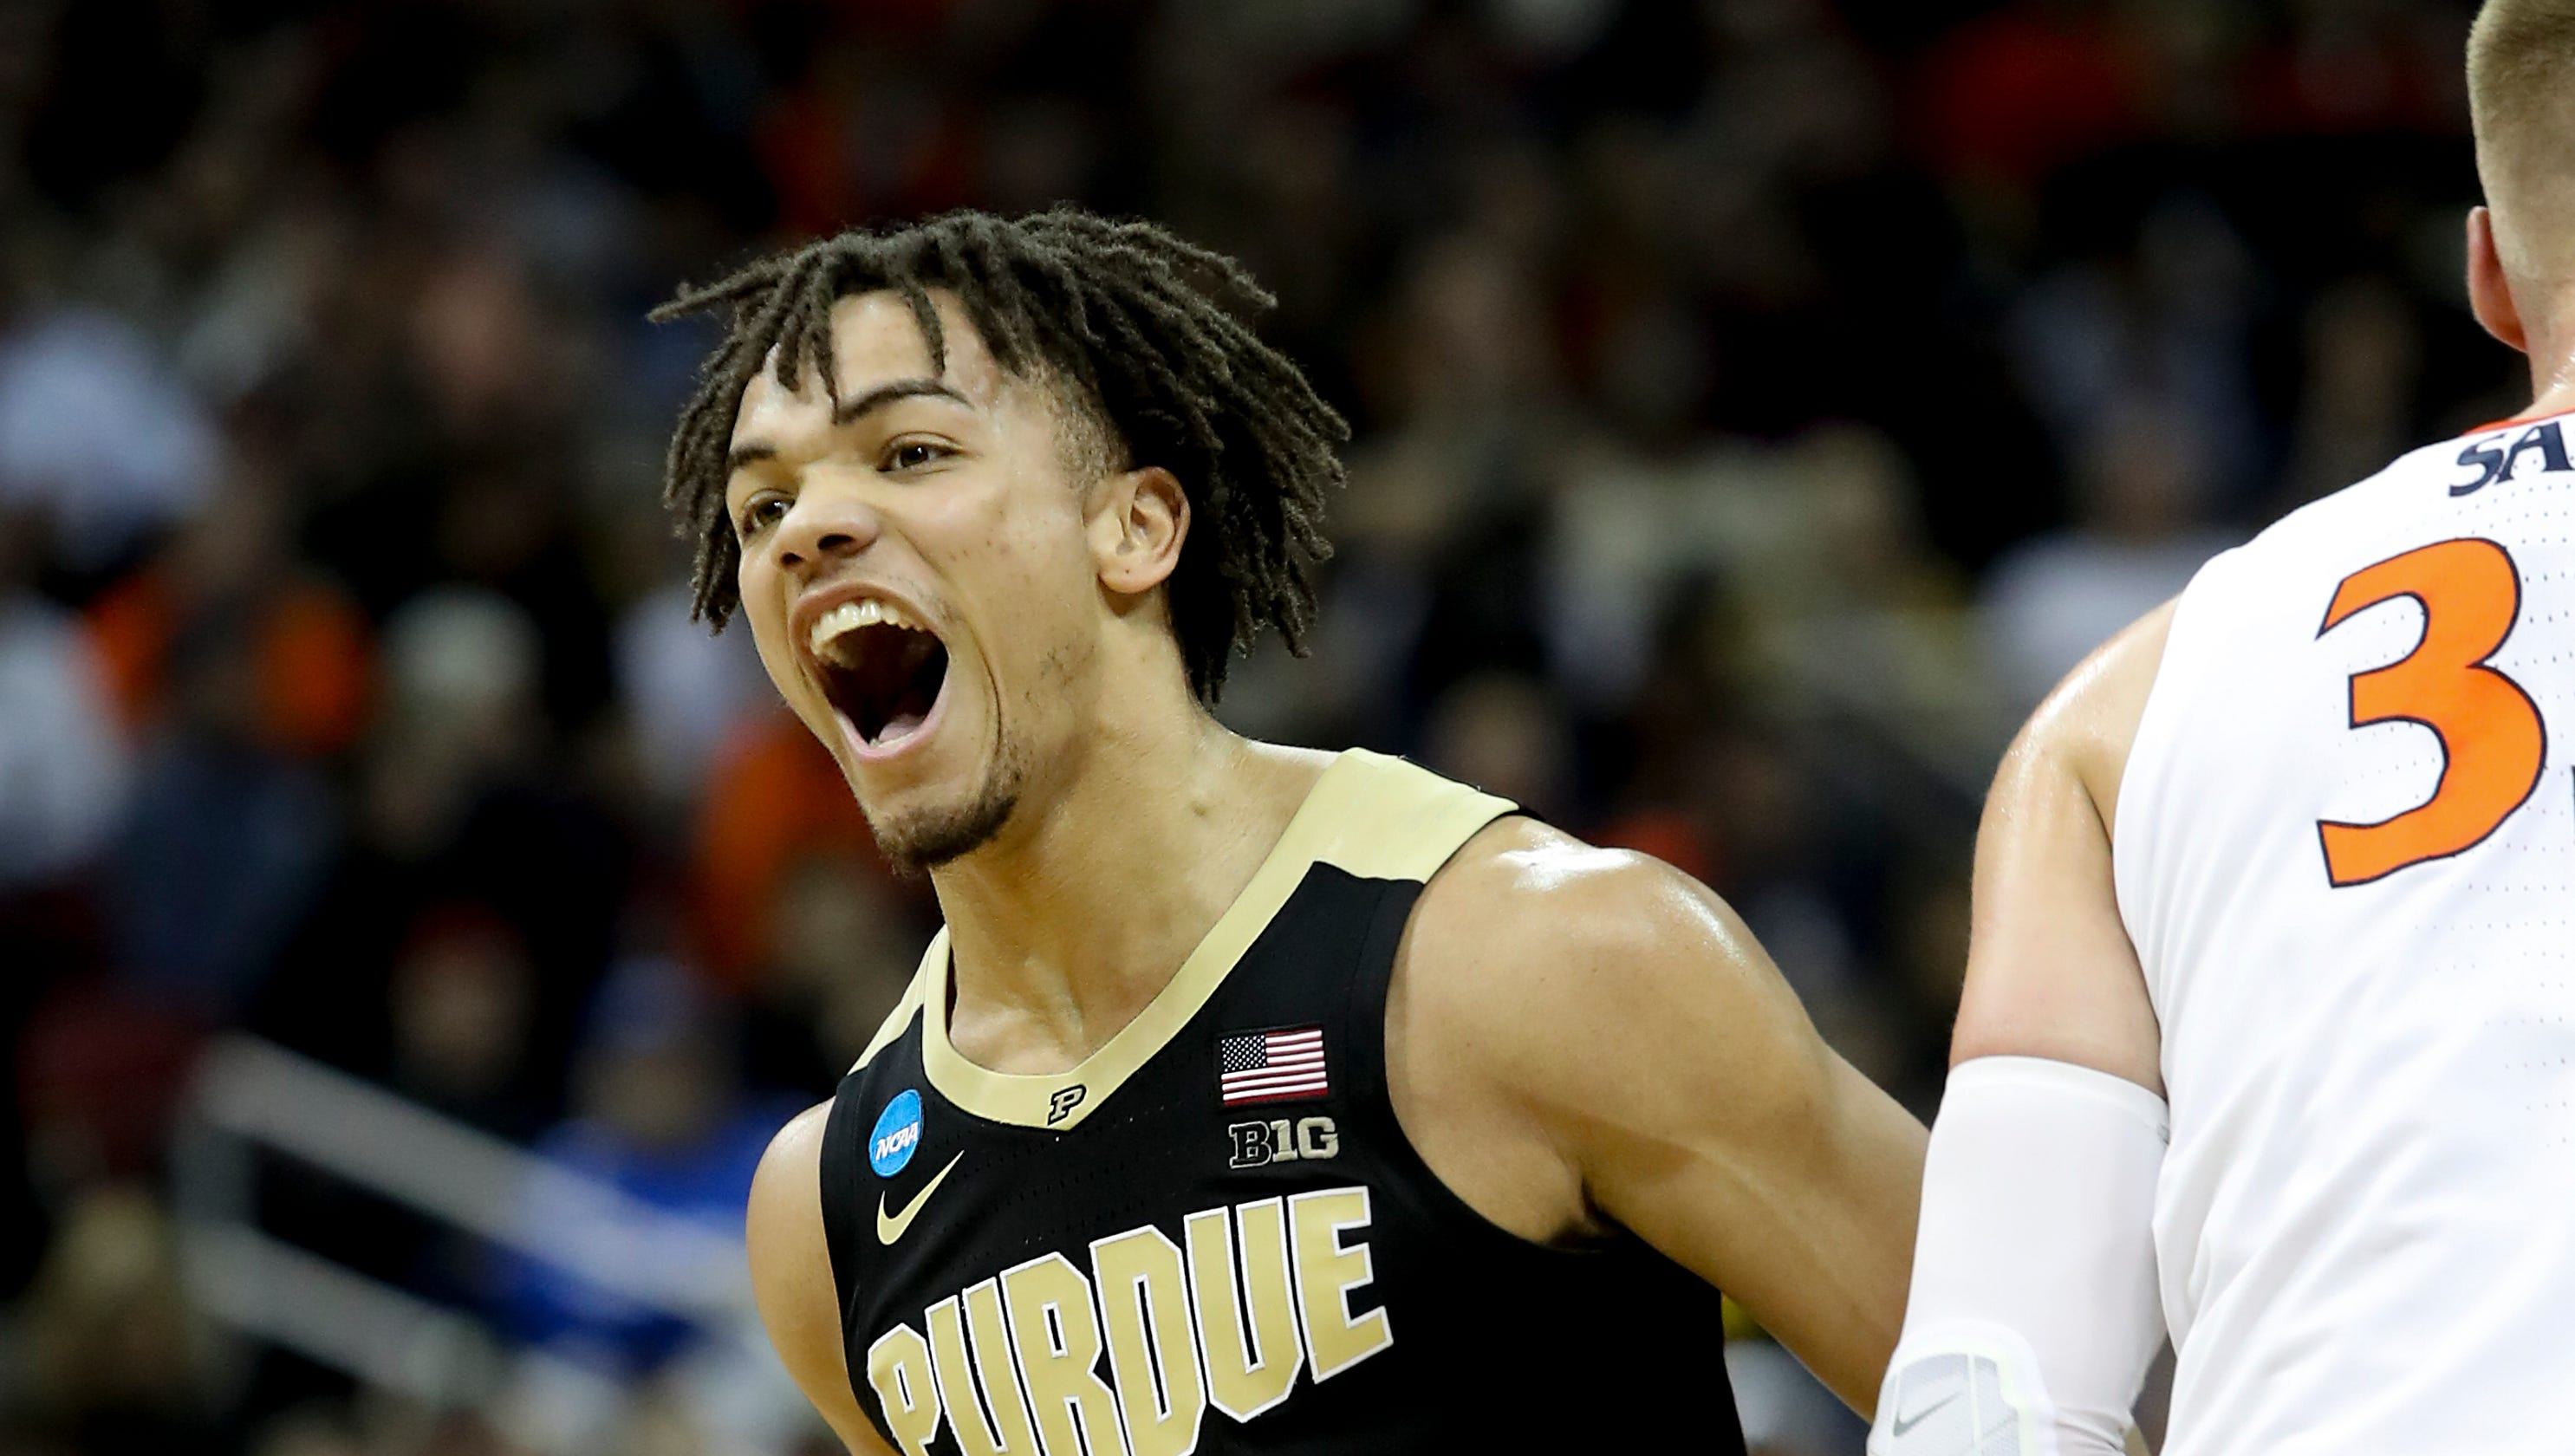 March Madness Purdue S Carsen Edwards Shines Against Virginia